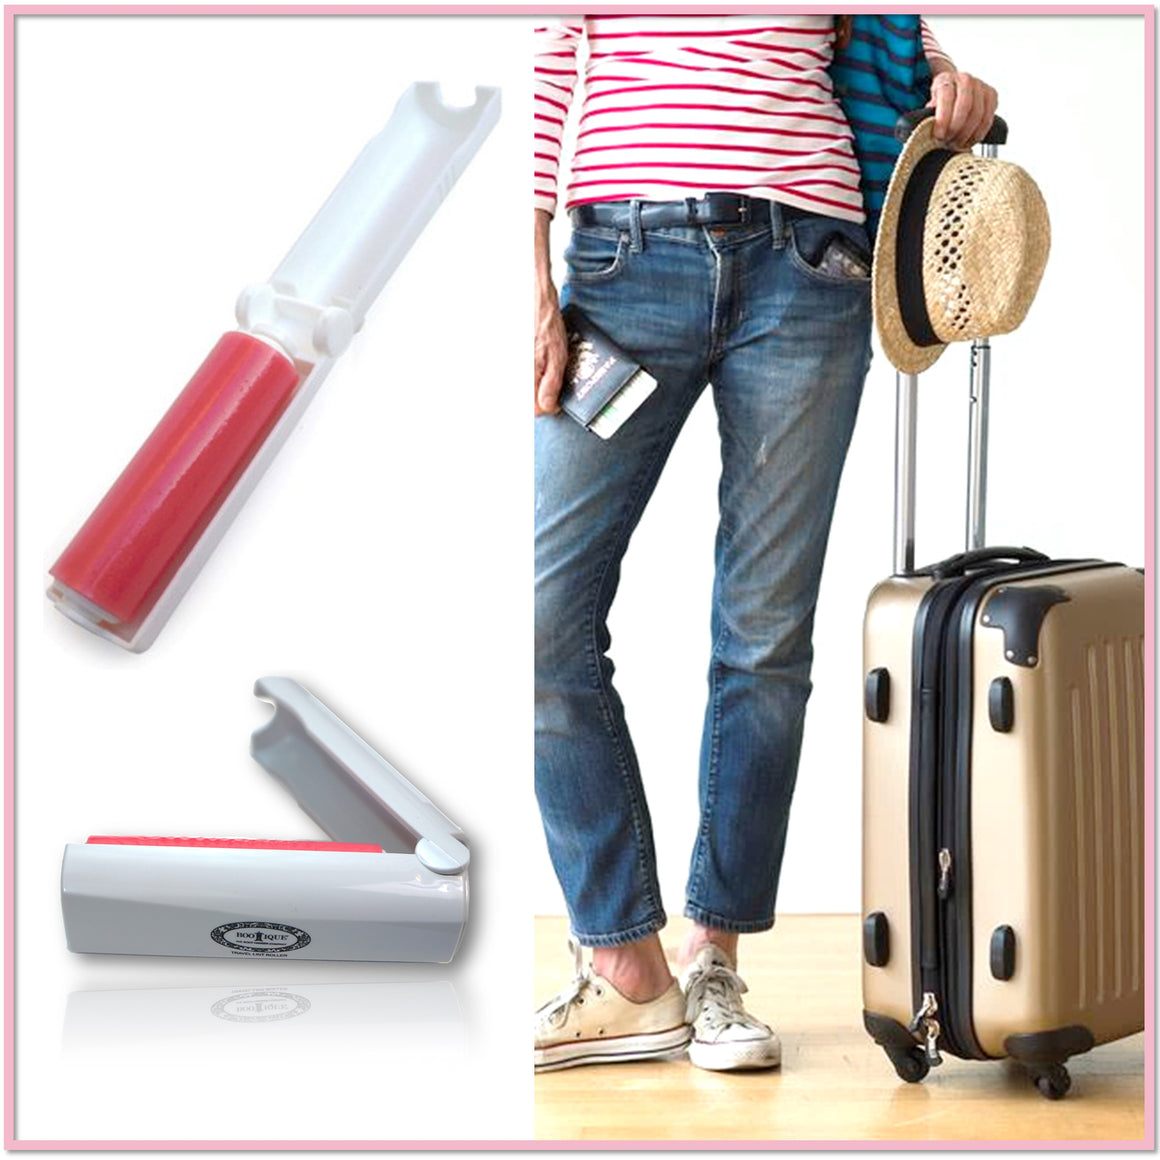 The Travel Lint Roller™ - Amazon's Choice - Boottique